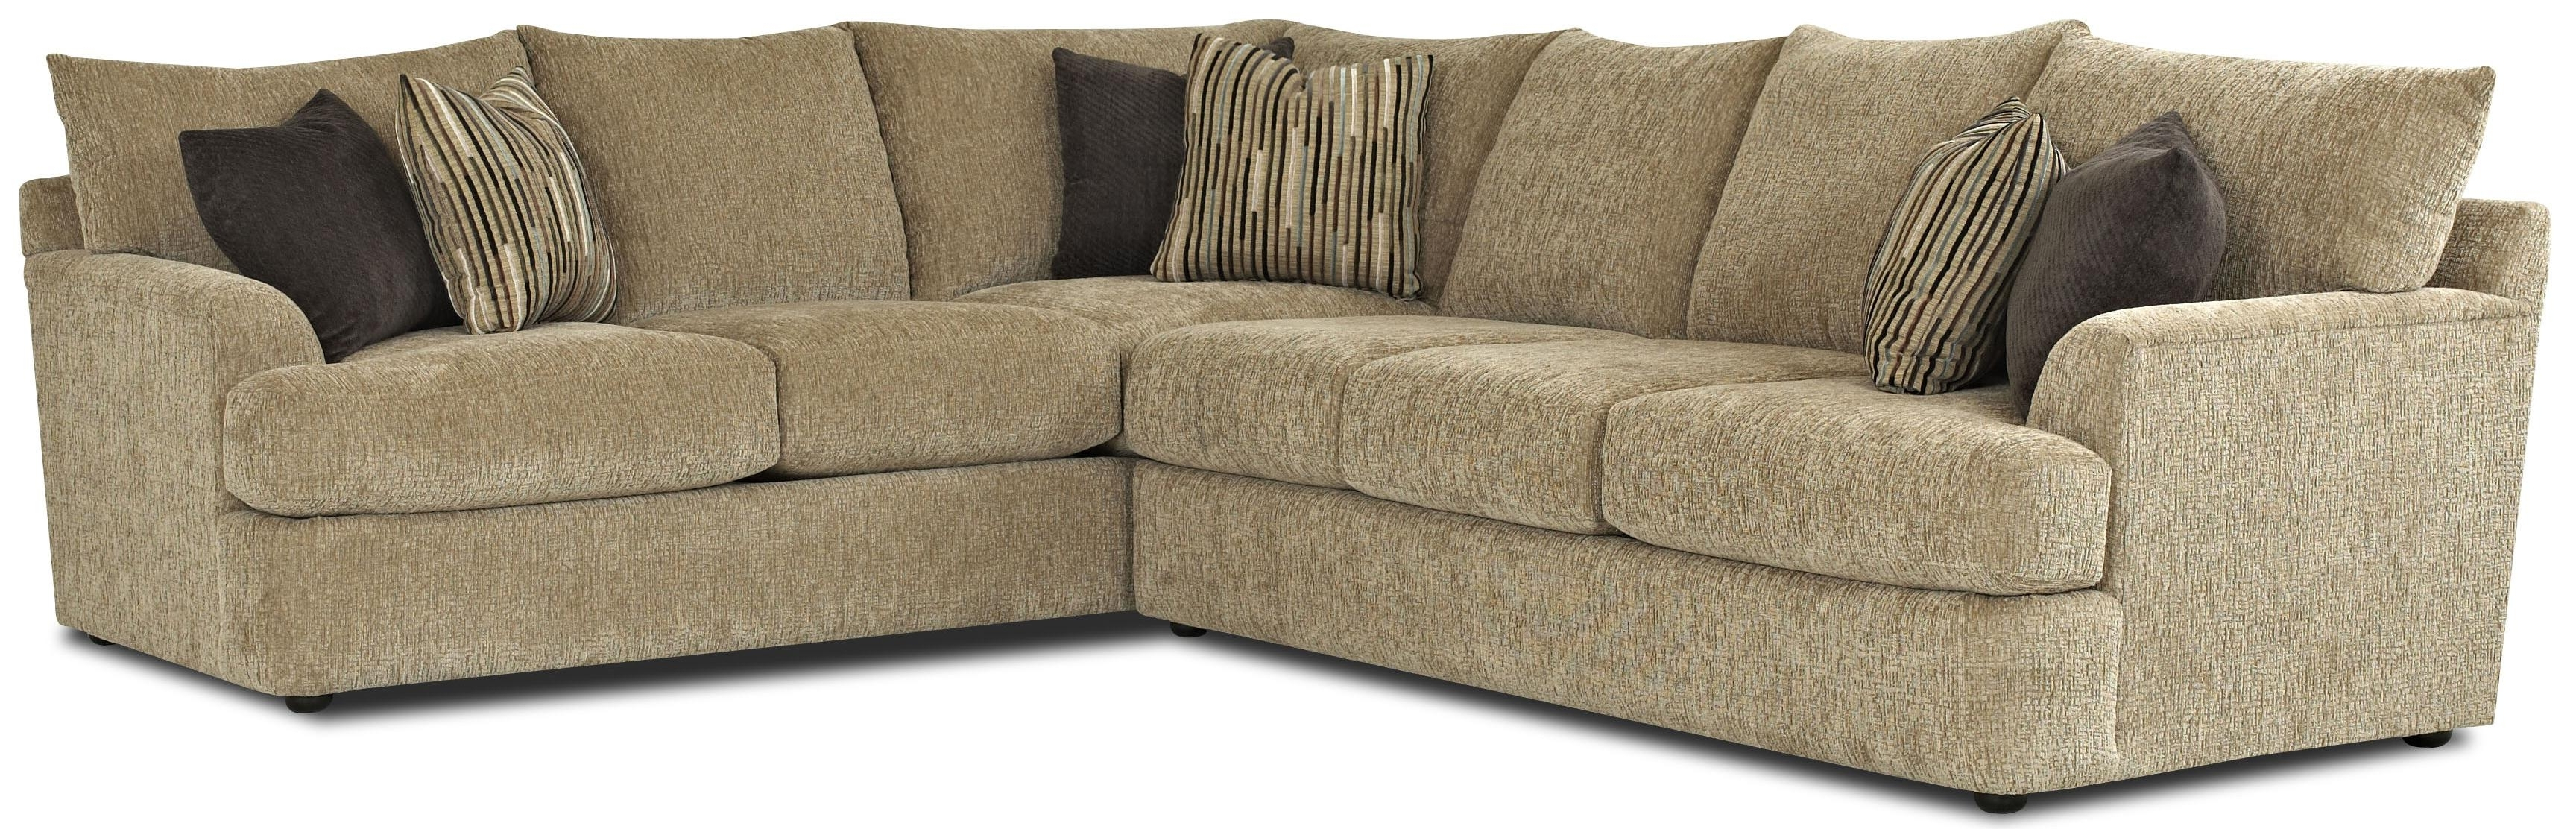 Contemporary L Shaped Sectional Sofaklaussner (View 3 of 15)